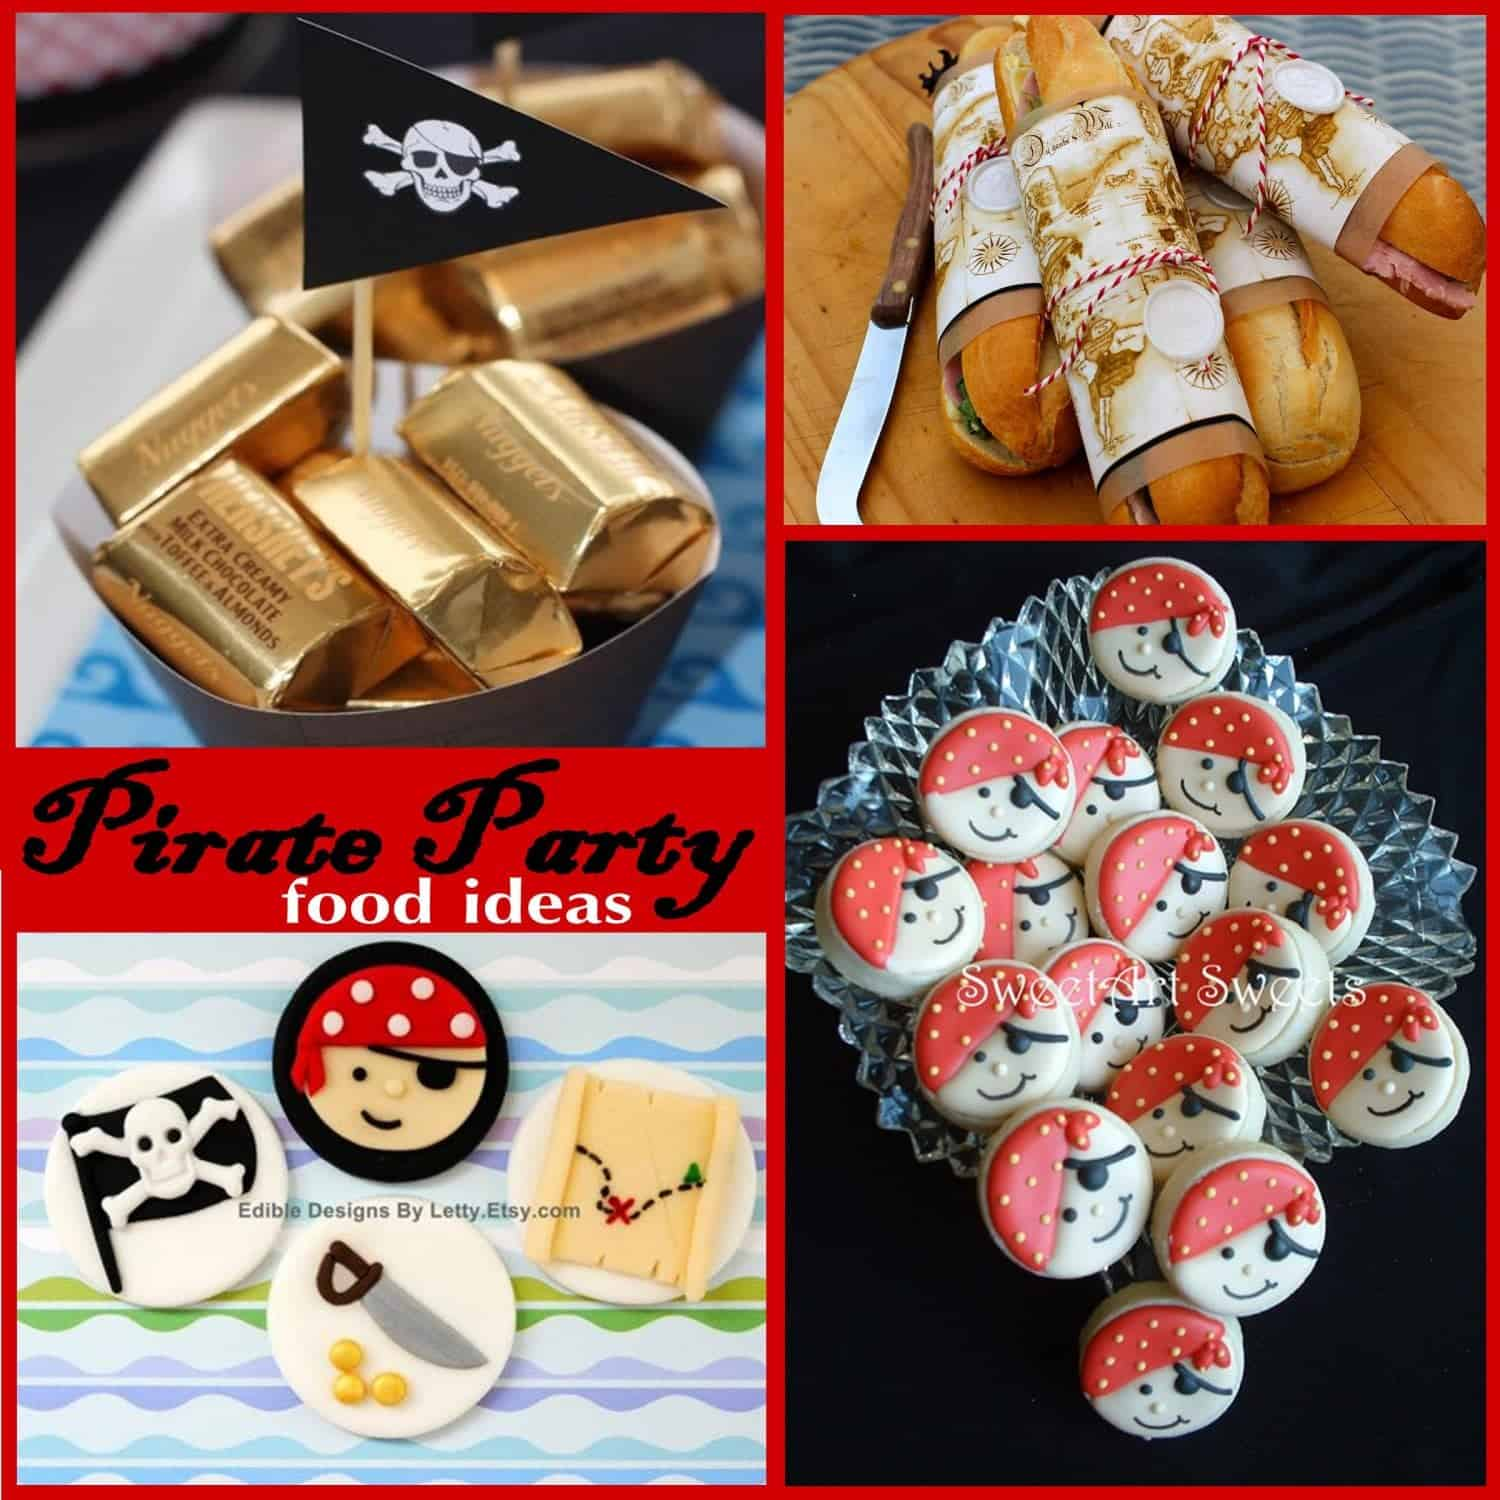 Pirate Party: Yo Ho Ho…Pirate Party Food Ideas